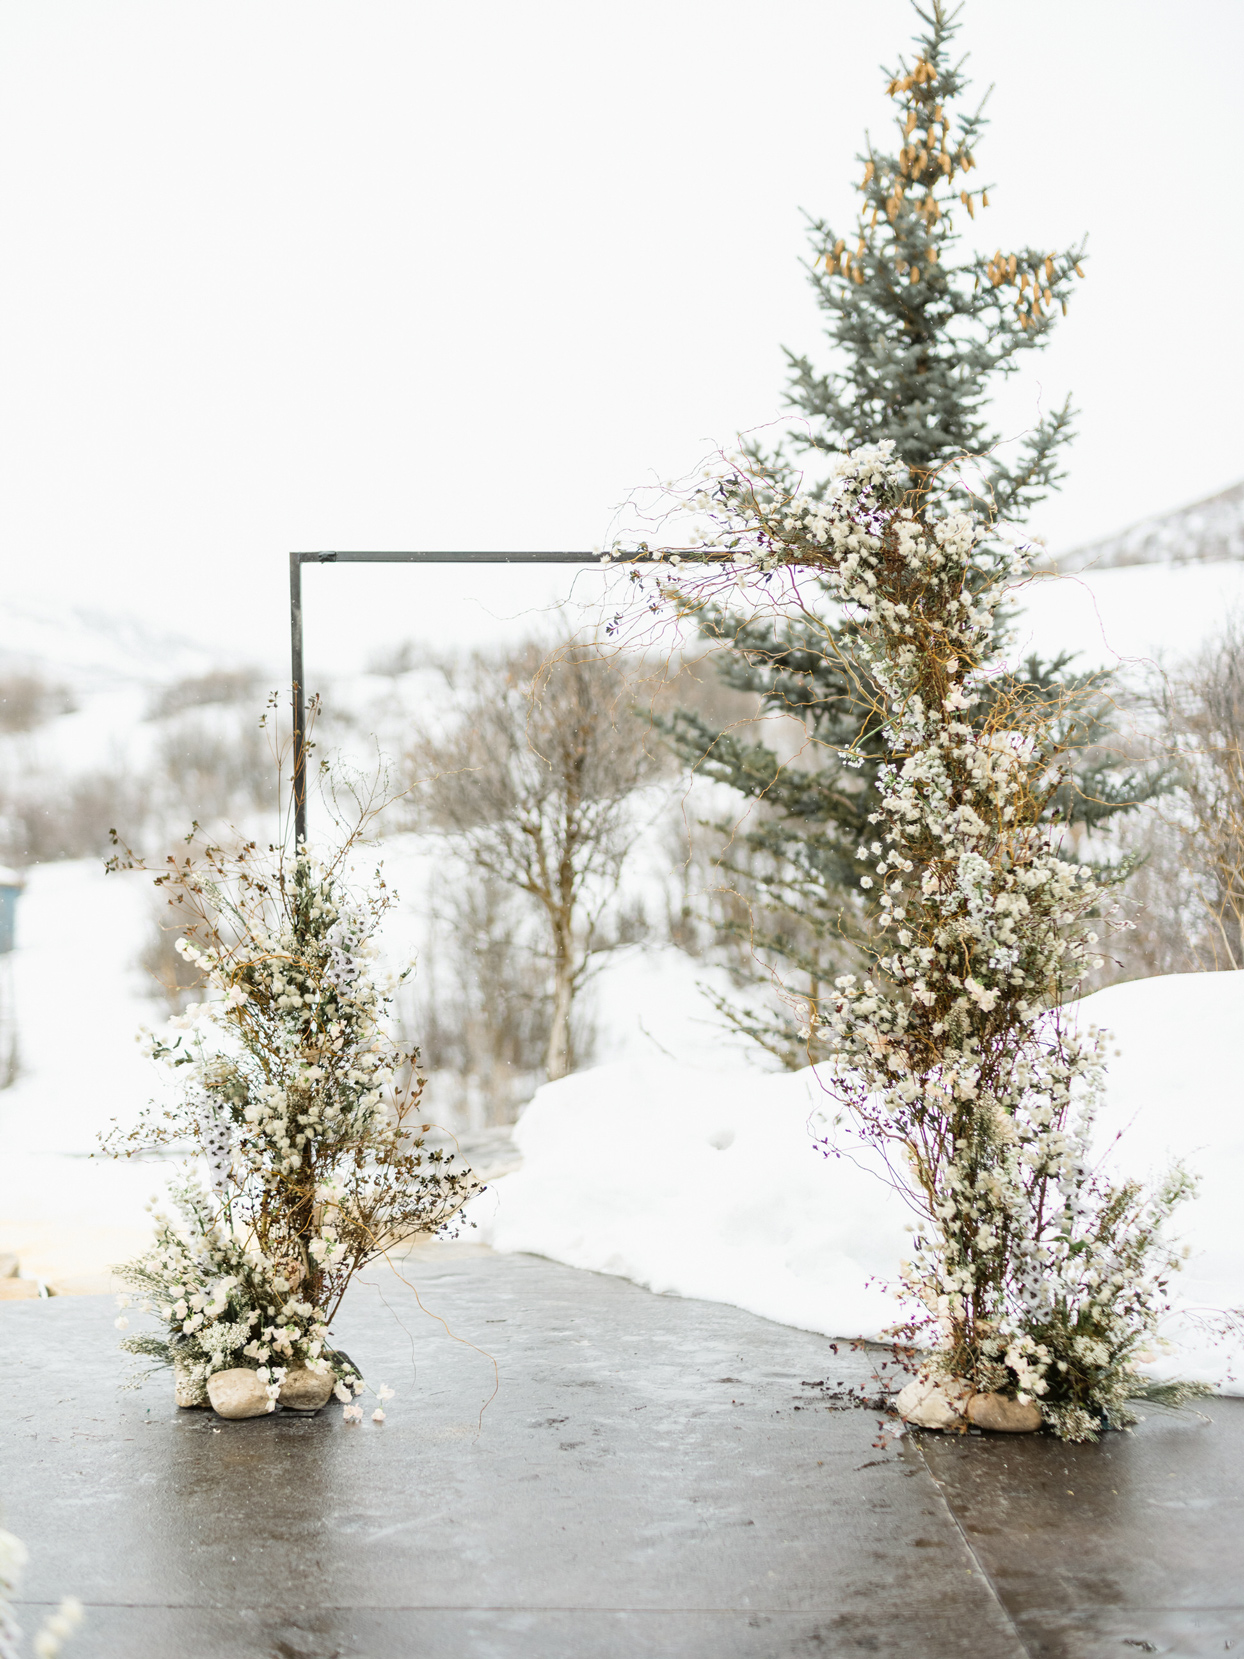 floral wedding arch with white flowers and foliage